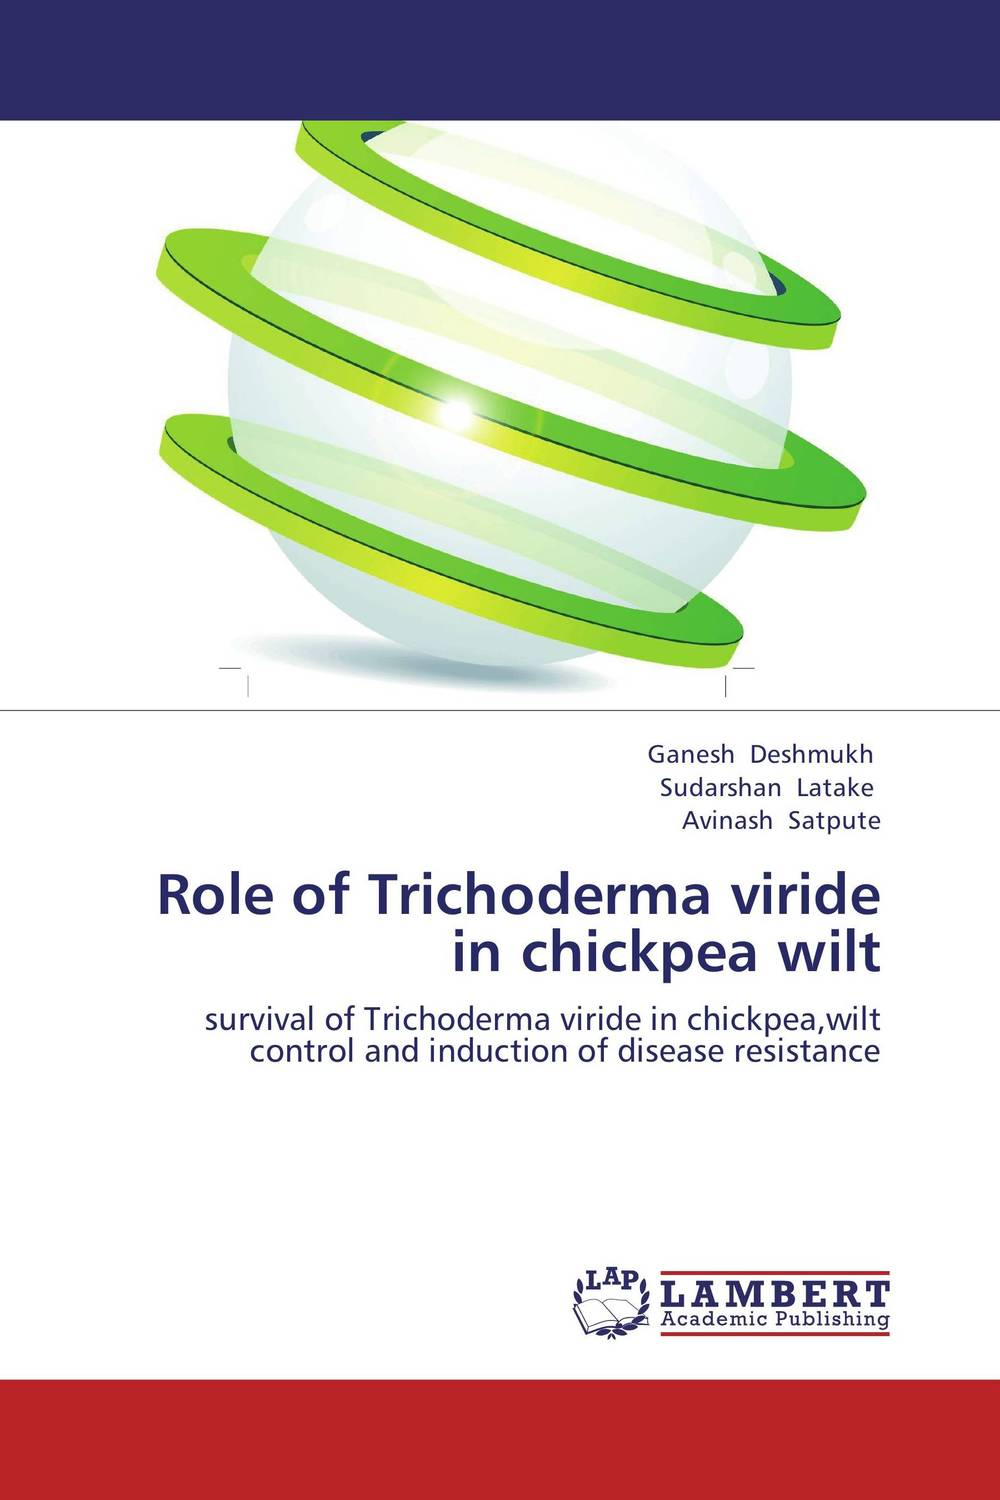 Role of Trichoderma viride in chickpea wilt augmented cellulase production by mutagenesis of trichoderma viride